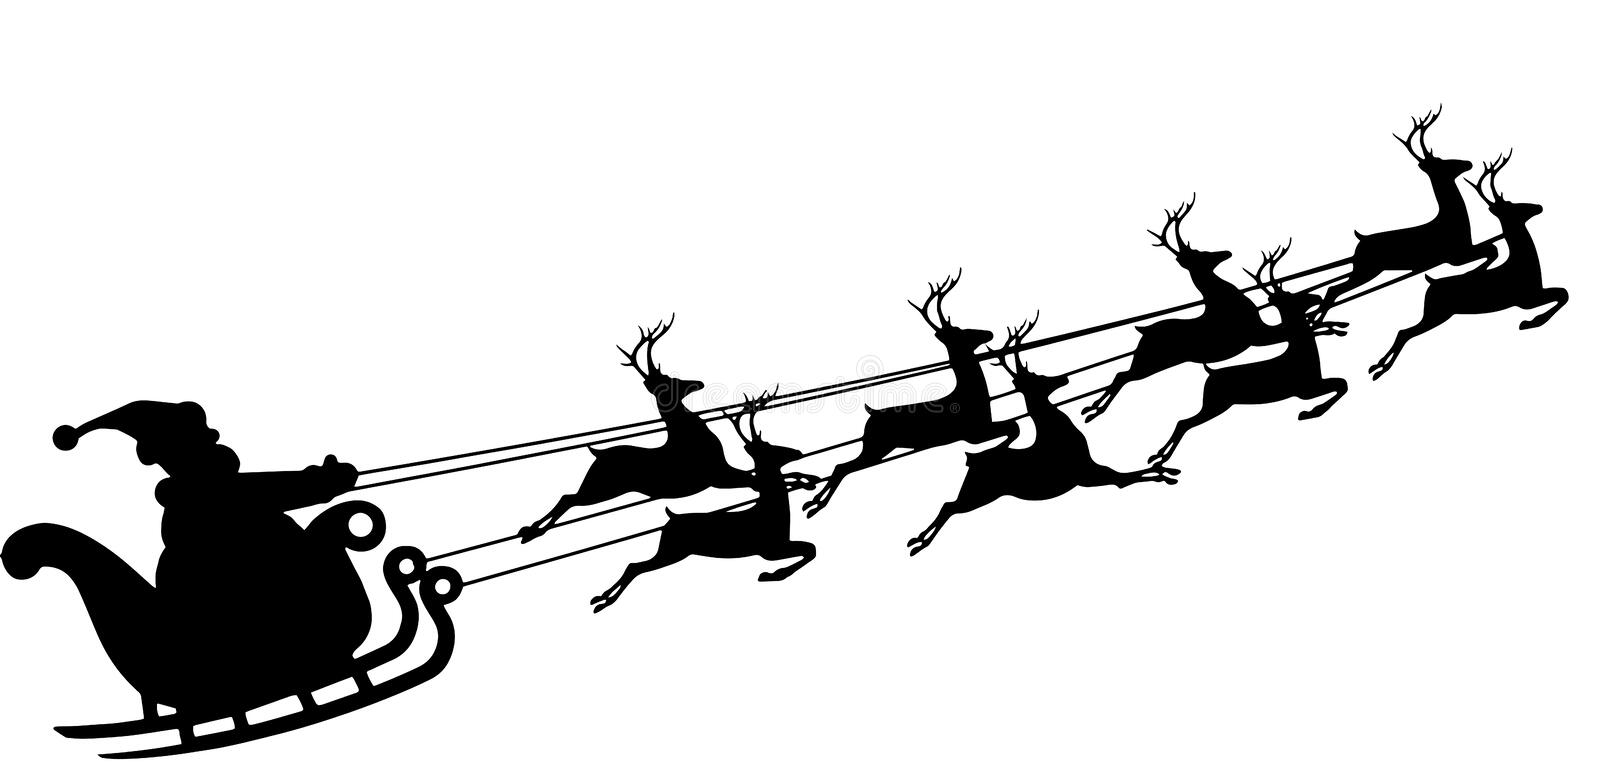 Santa Claus in a sleigh. Reindeer and sleigh. royalty free stock photo